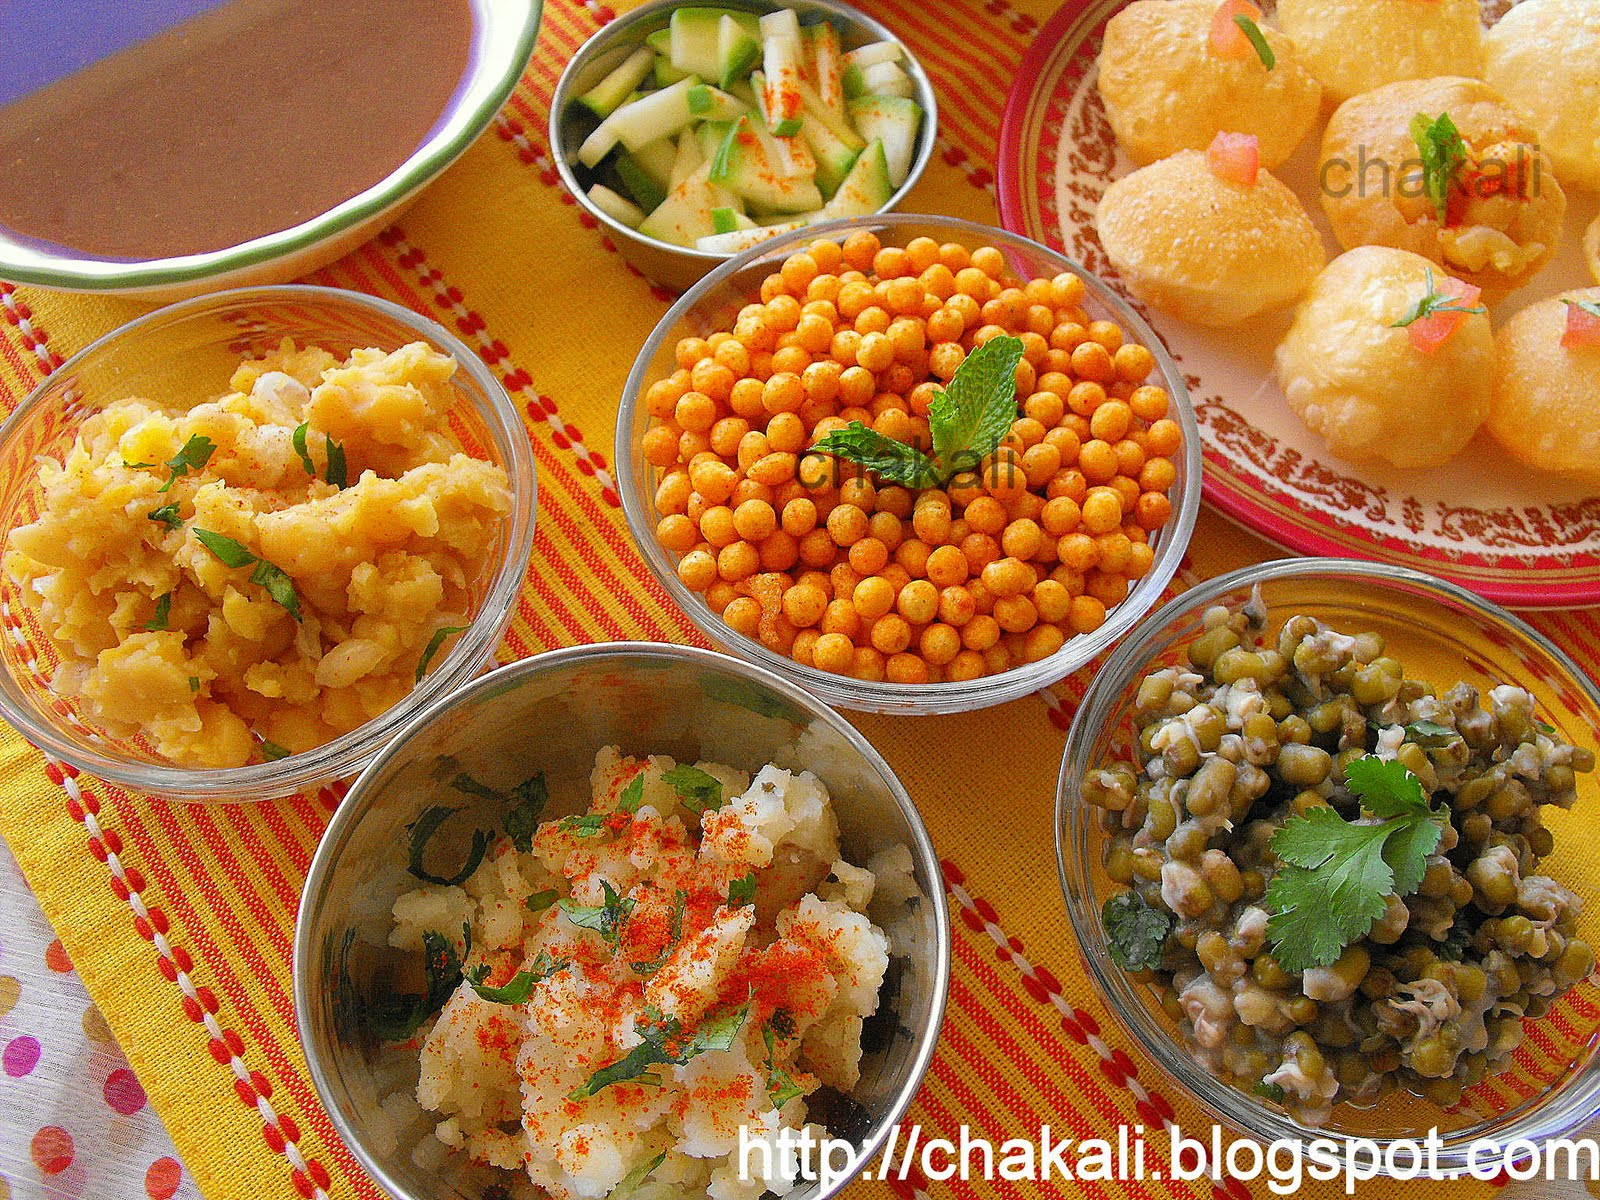 variety of stuffing like boondi, boiled potato, mung for panipuri